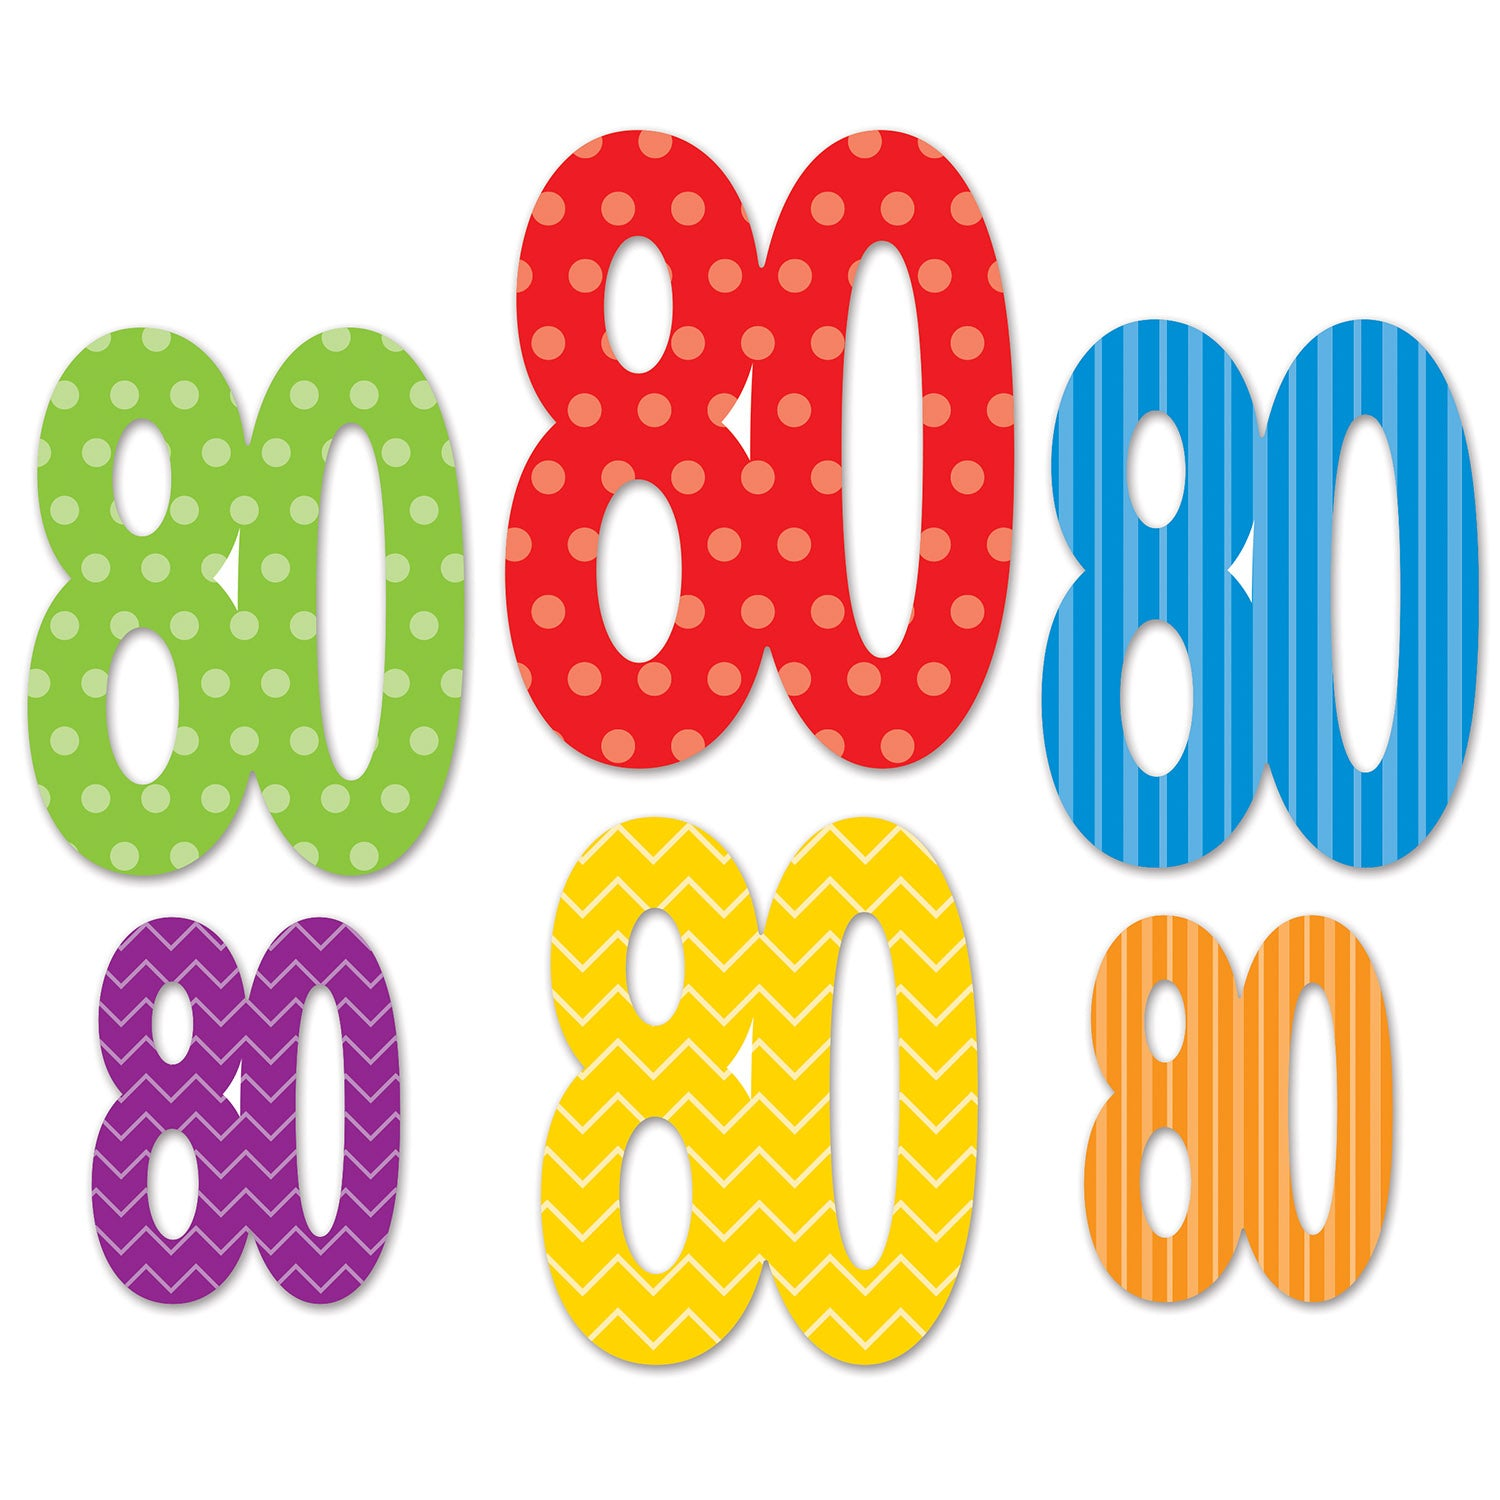 80 Cutouts (6/Pkg) by Beistle - 80th Birthday Party Decorations